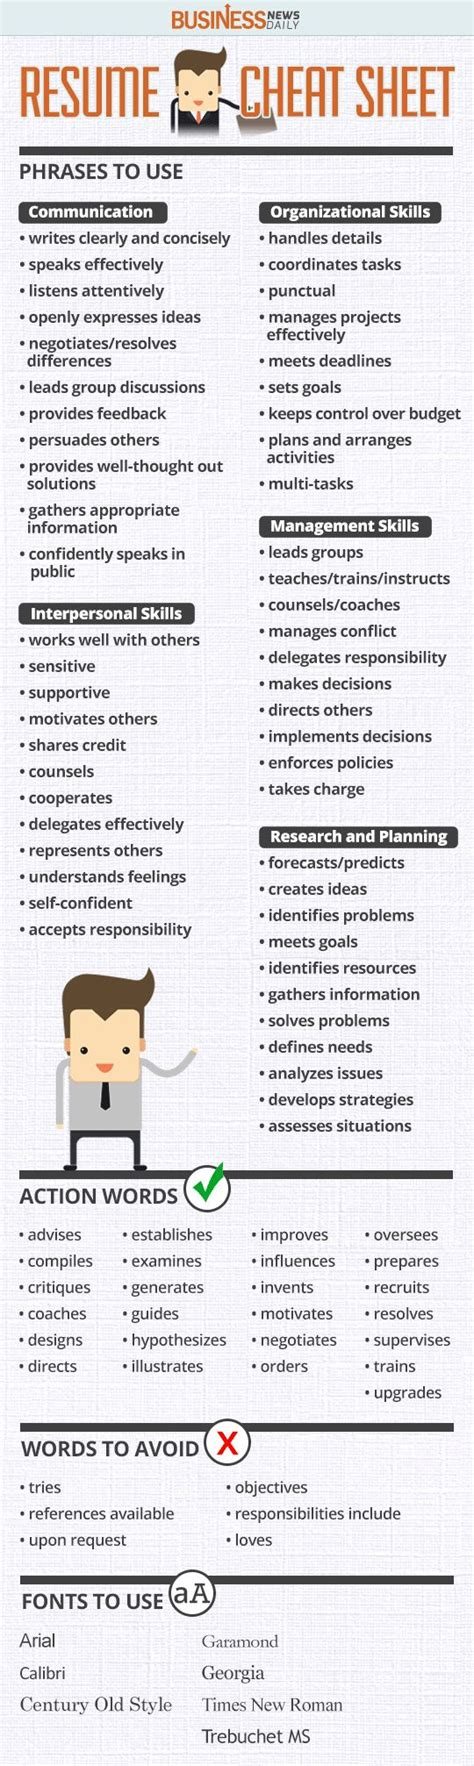 Resume Never Had A Job by 77 Best Images About Resume Tips On Pinterest Job Cover